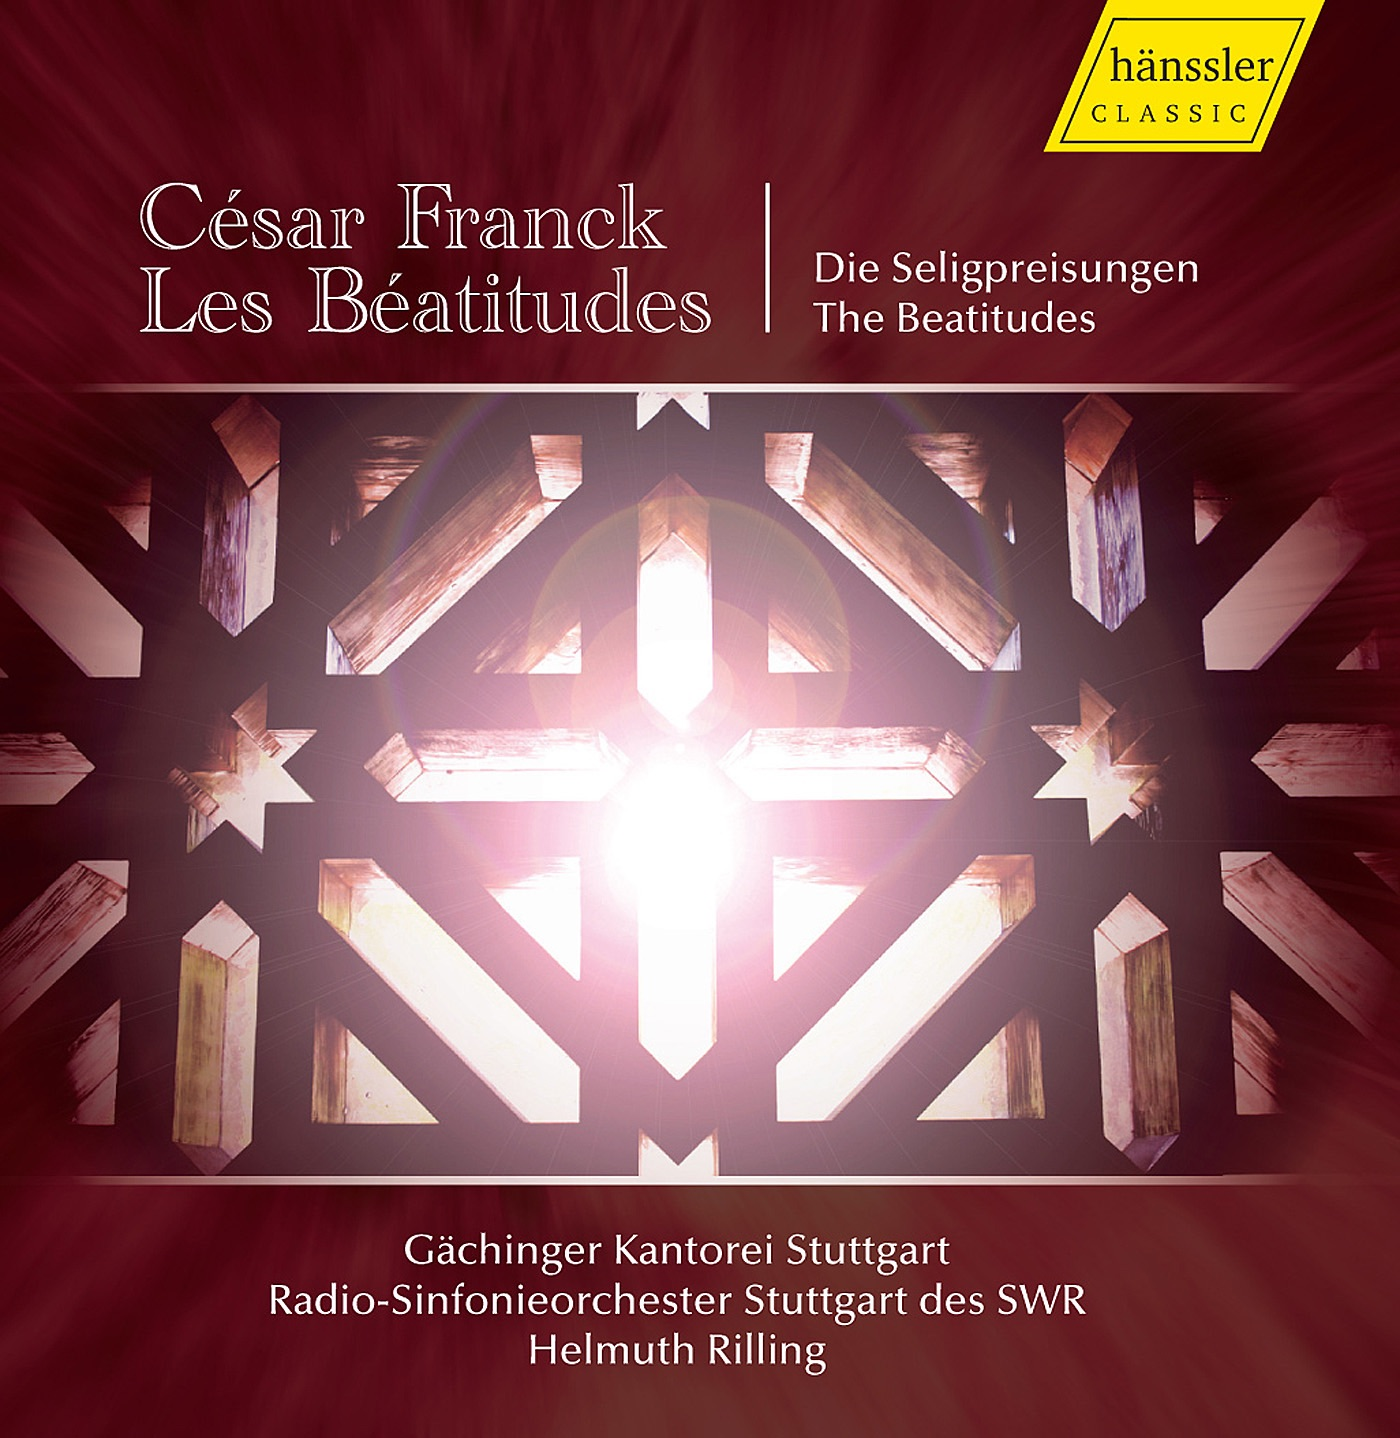 Les Beatitudes, M. 53: Beatitude No. 6. Selig, Die Reinen Herzens Sind (Blessed Are the Pure In Heart) (Bass, Tenor, Chorus, Baritone)